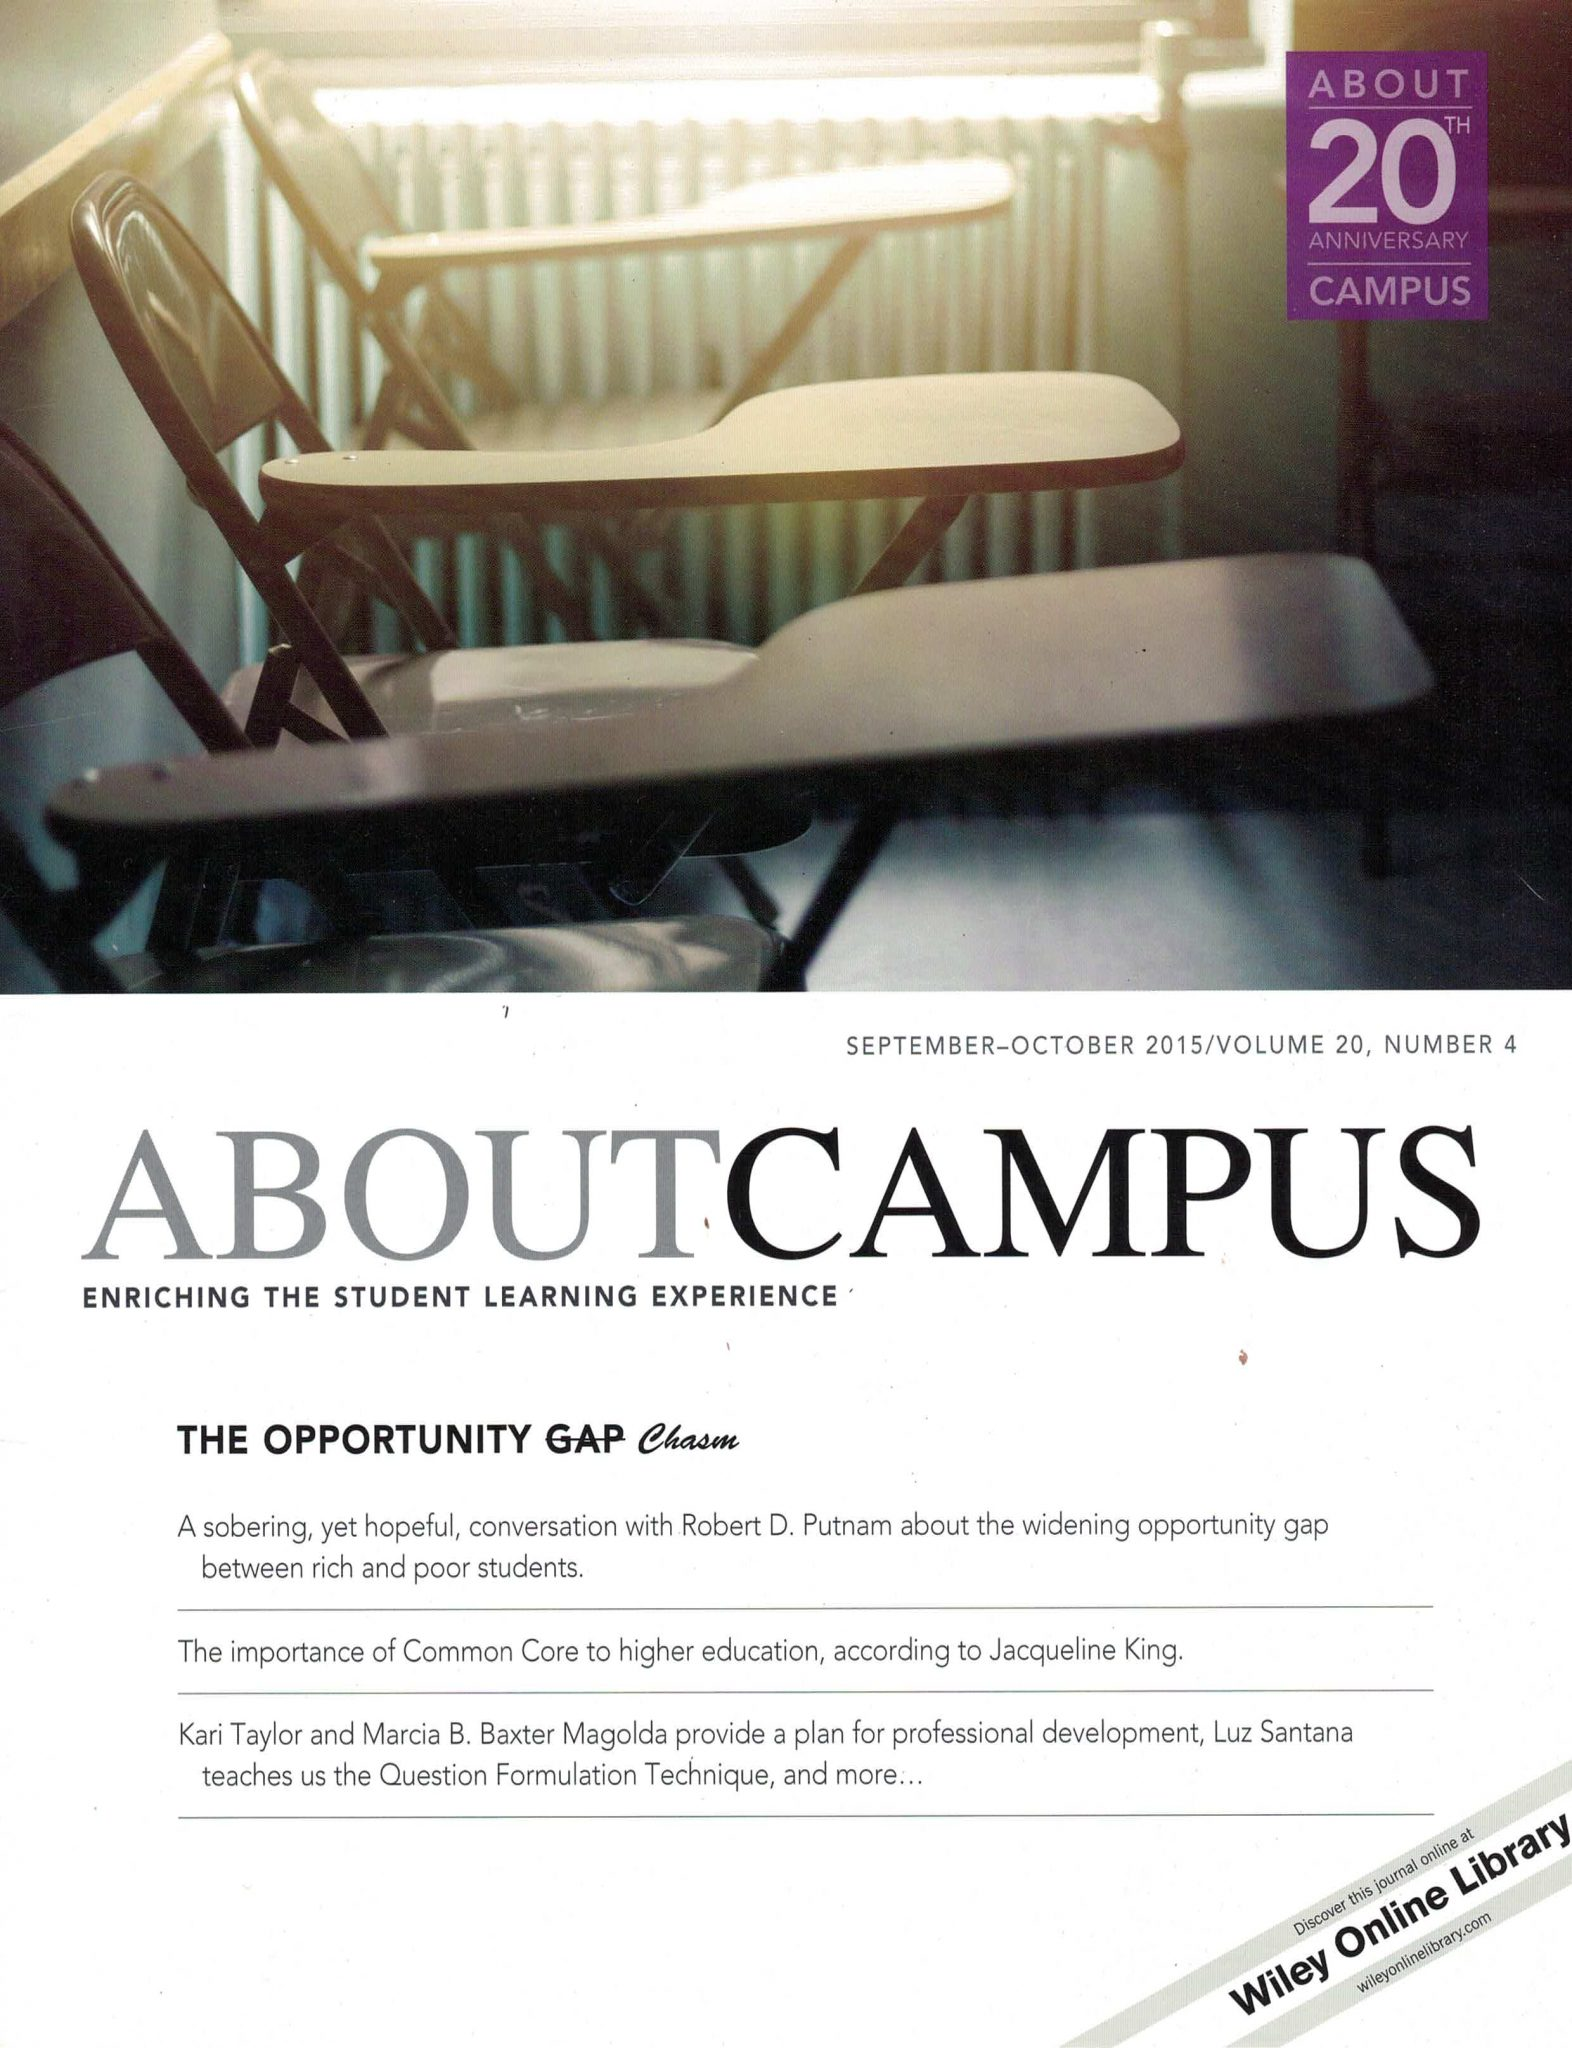 About Campus